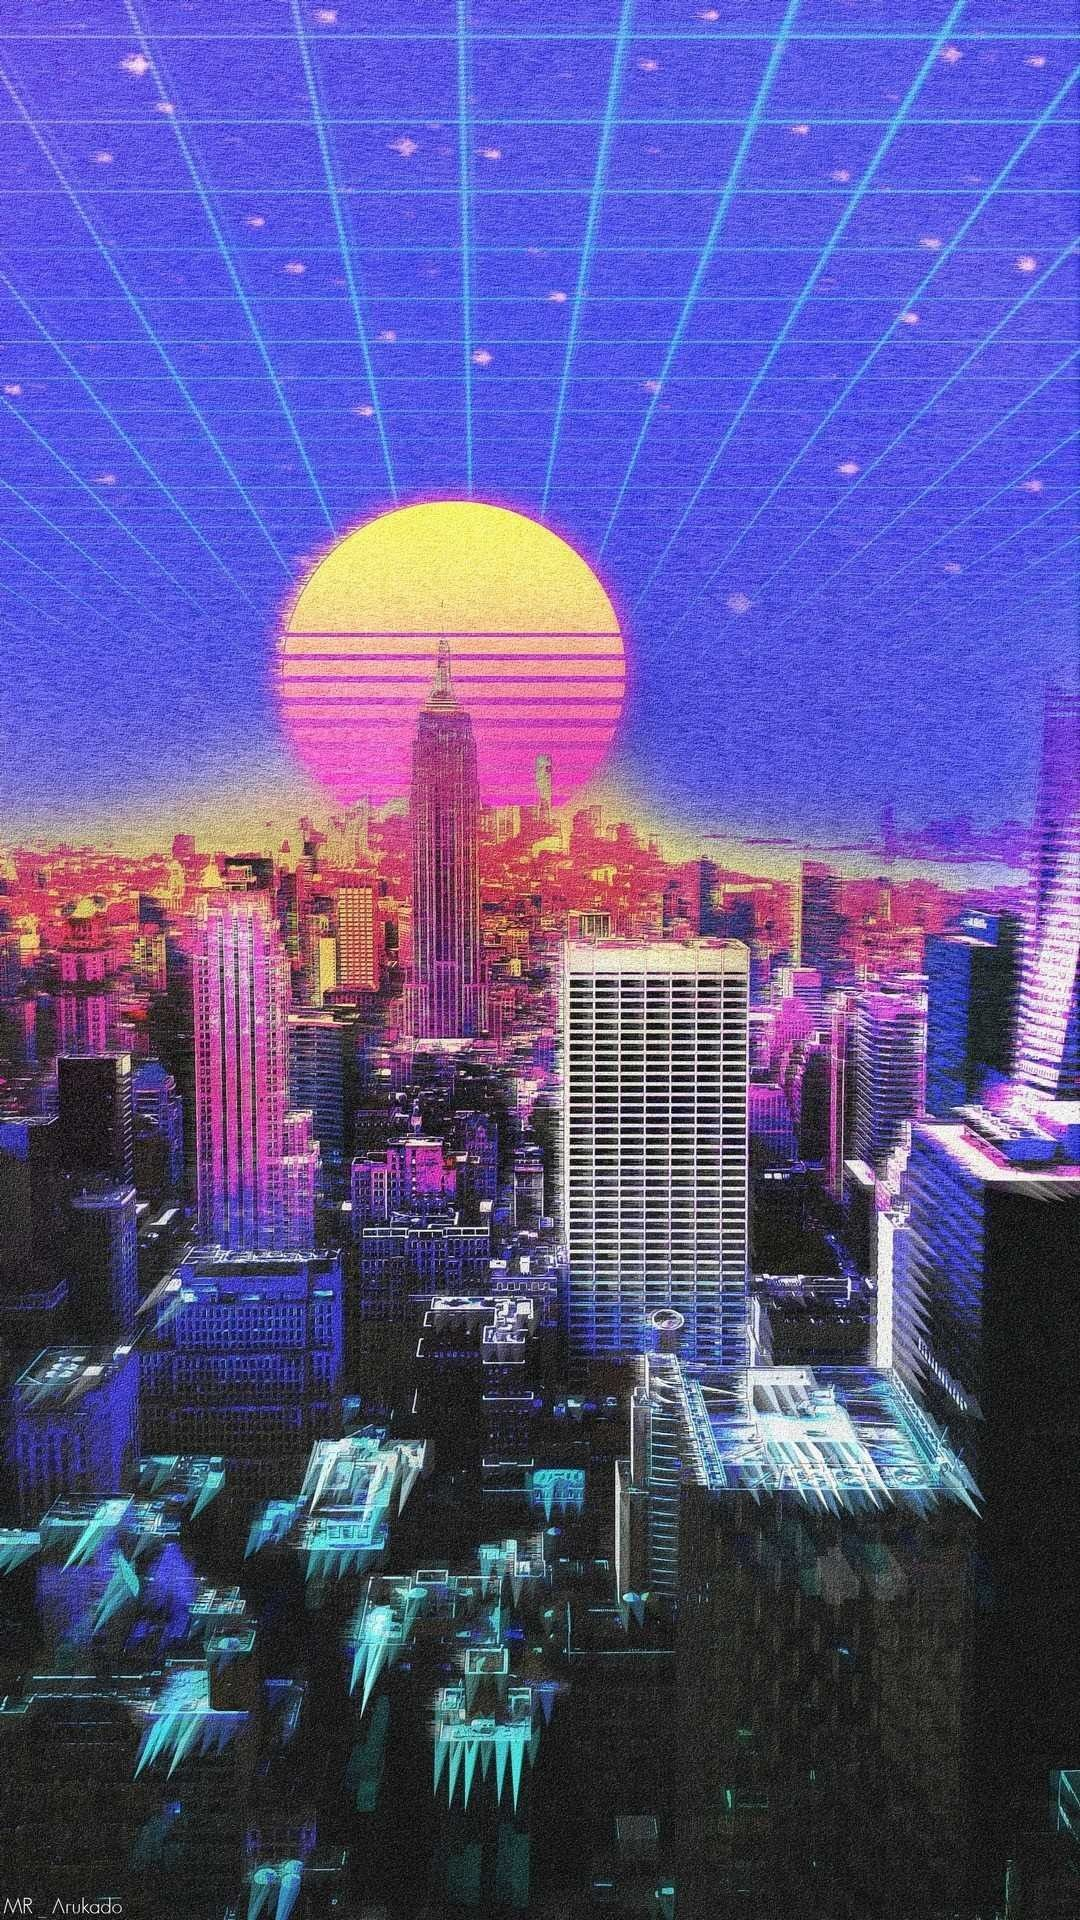 Pin by Rosamary Fernandez on vaporwave wallpapers ...